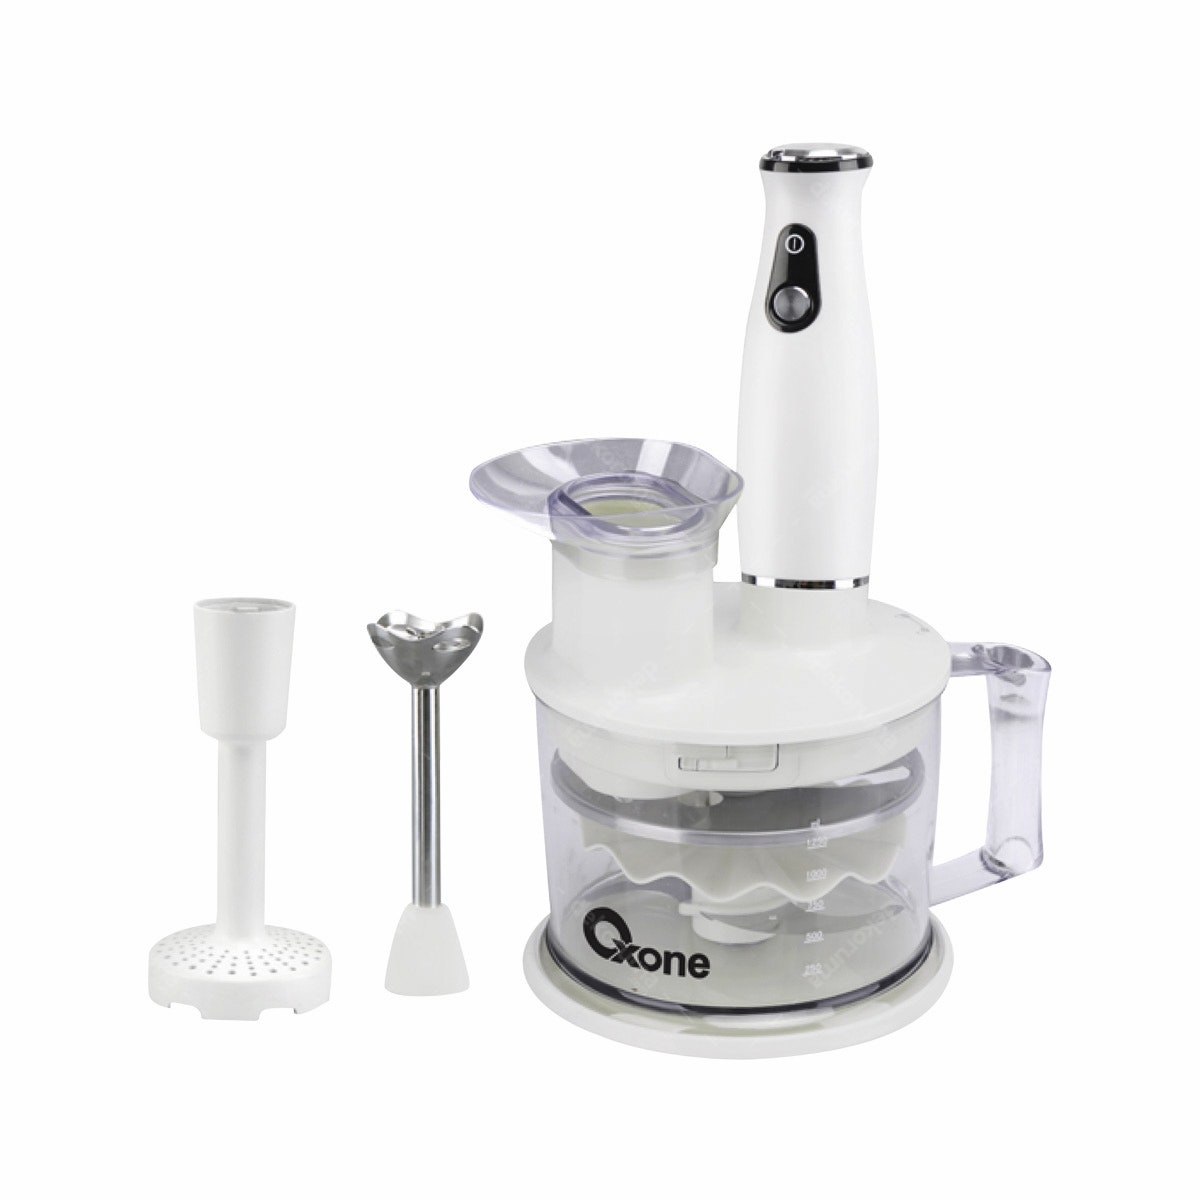 Oxone Eco Hand Blender & Chopper OX-161